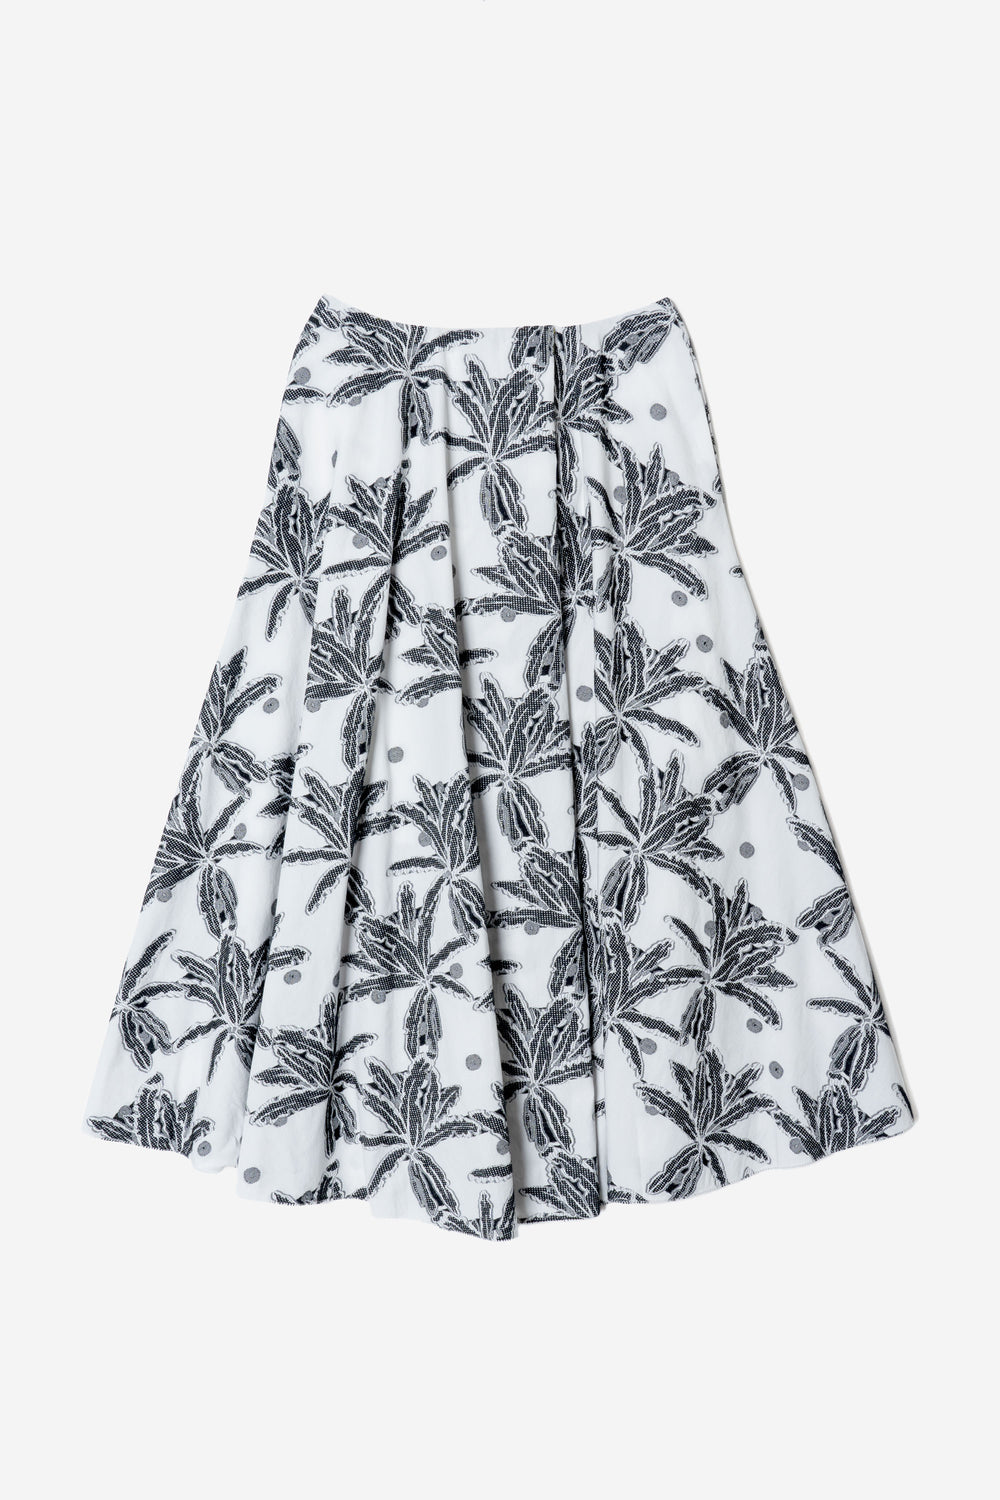 https://greed.co.jp/collections/greed-internartional-skirt/products/limited-lily-jacquard-skirt-in-white